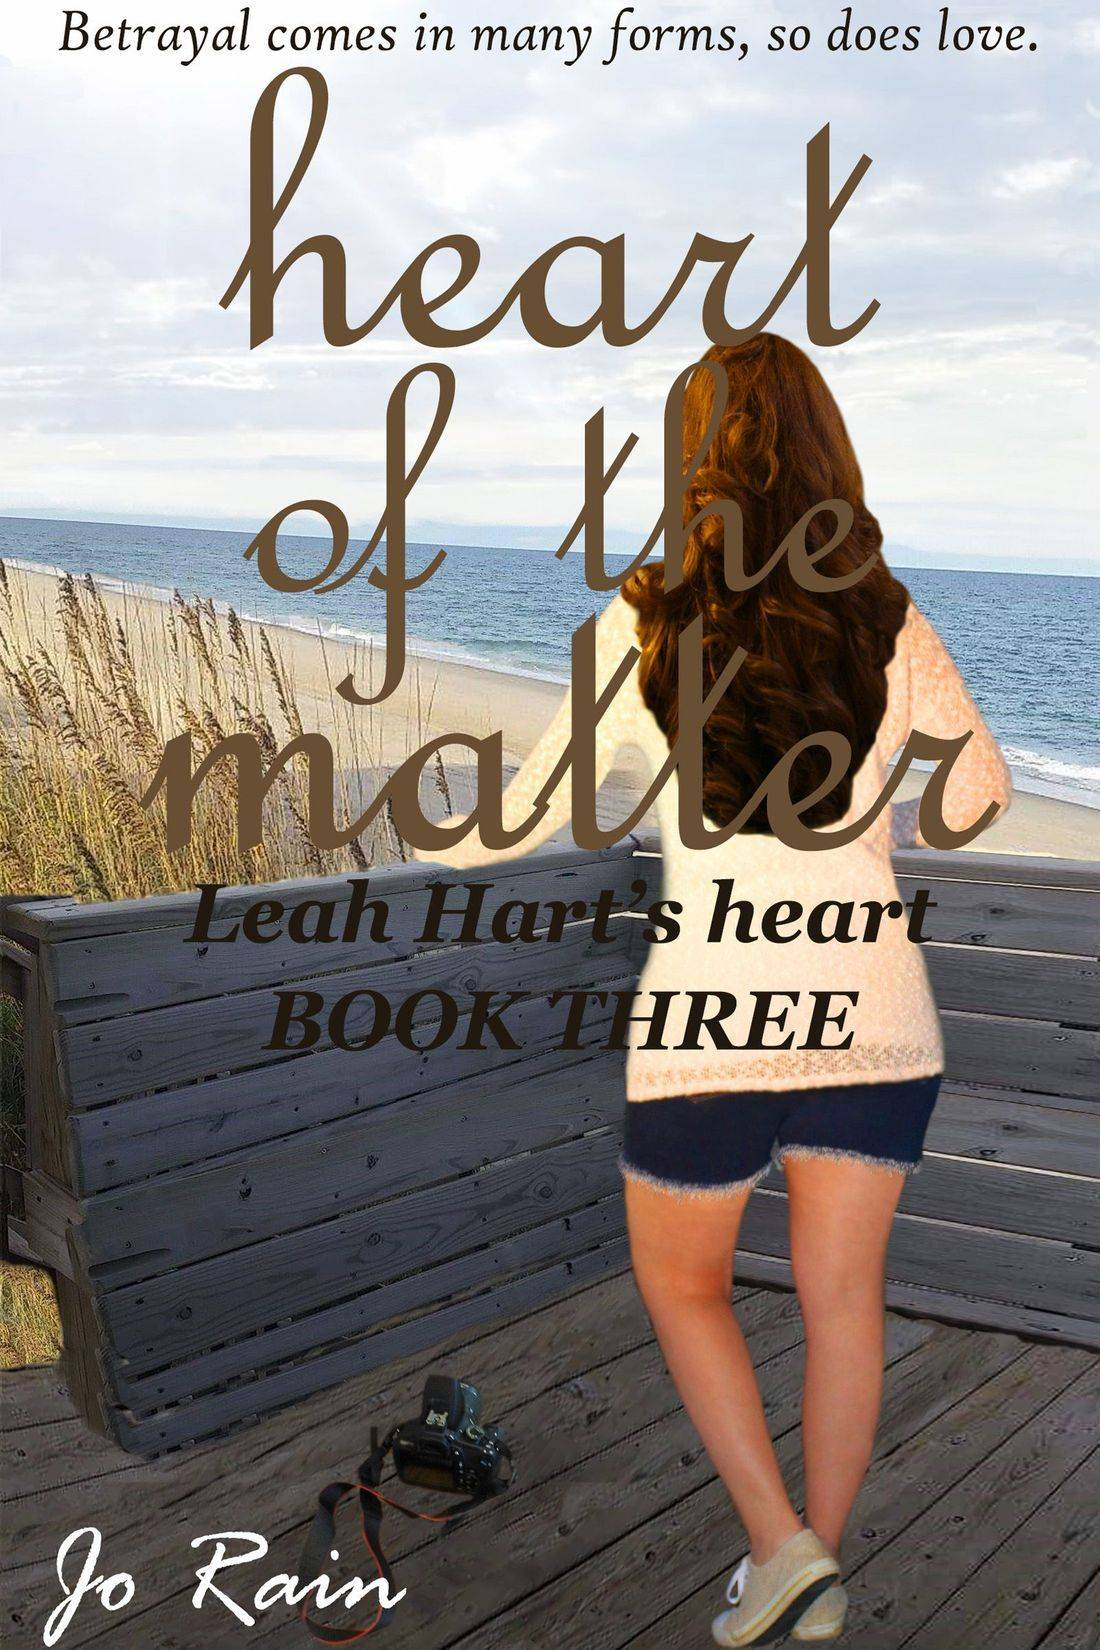 jo rain, leah hart's heart, leah hart series, heart of the matter, romance mystery